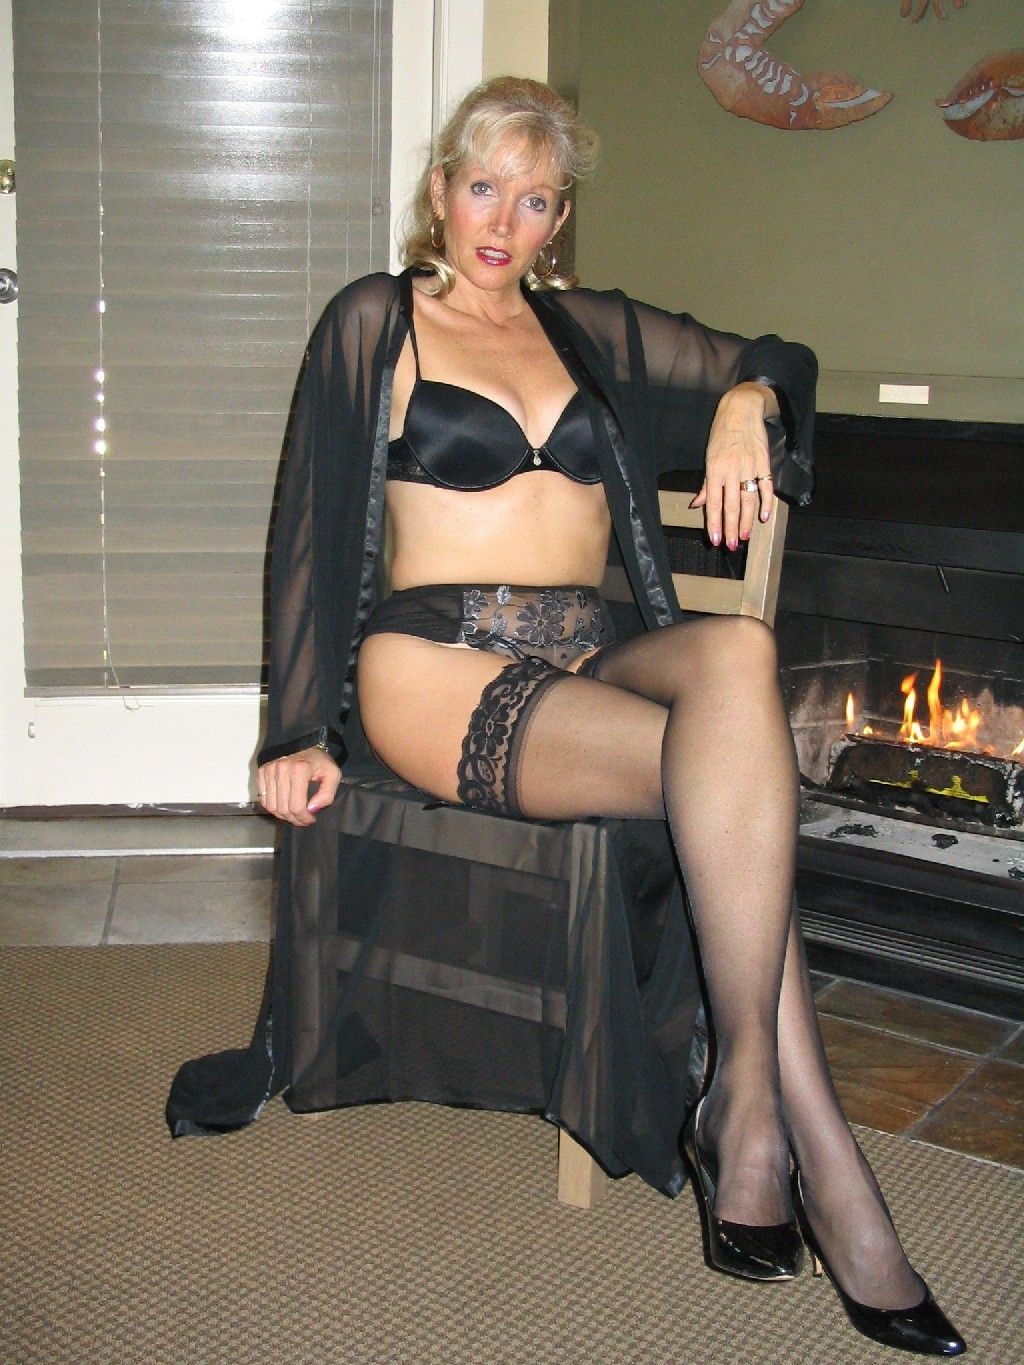 Mature Wife Posing In Sexy Black Lingerie  Milf Update-5413